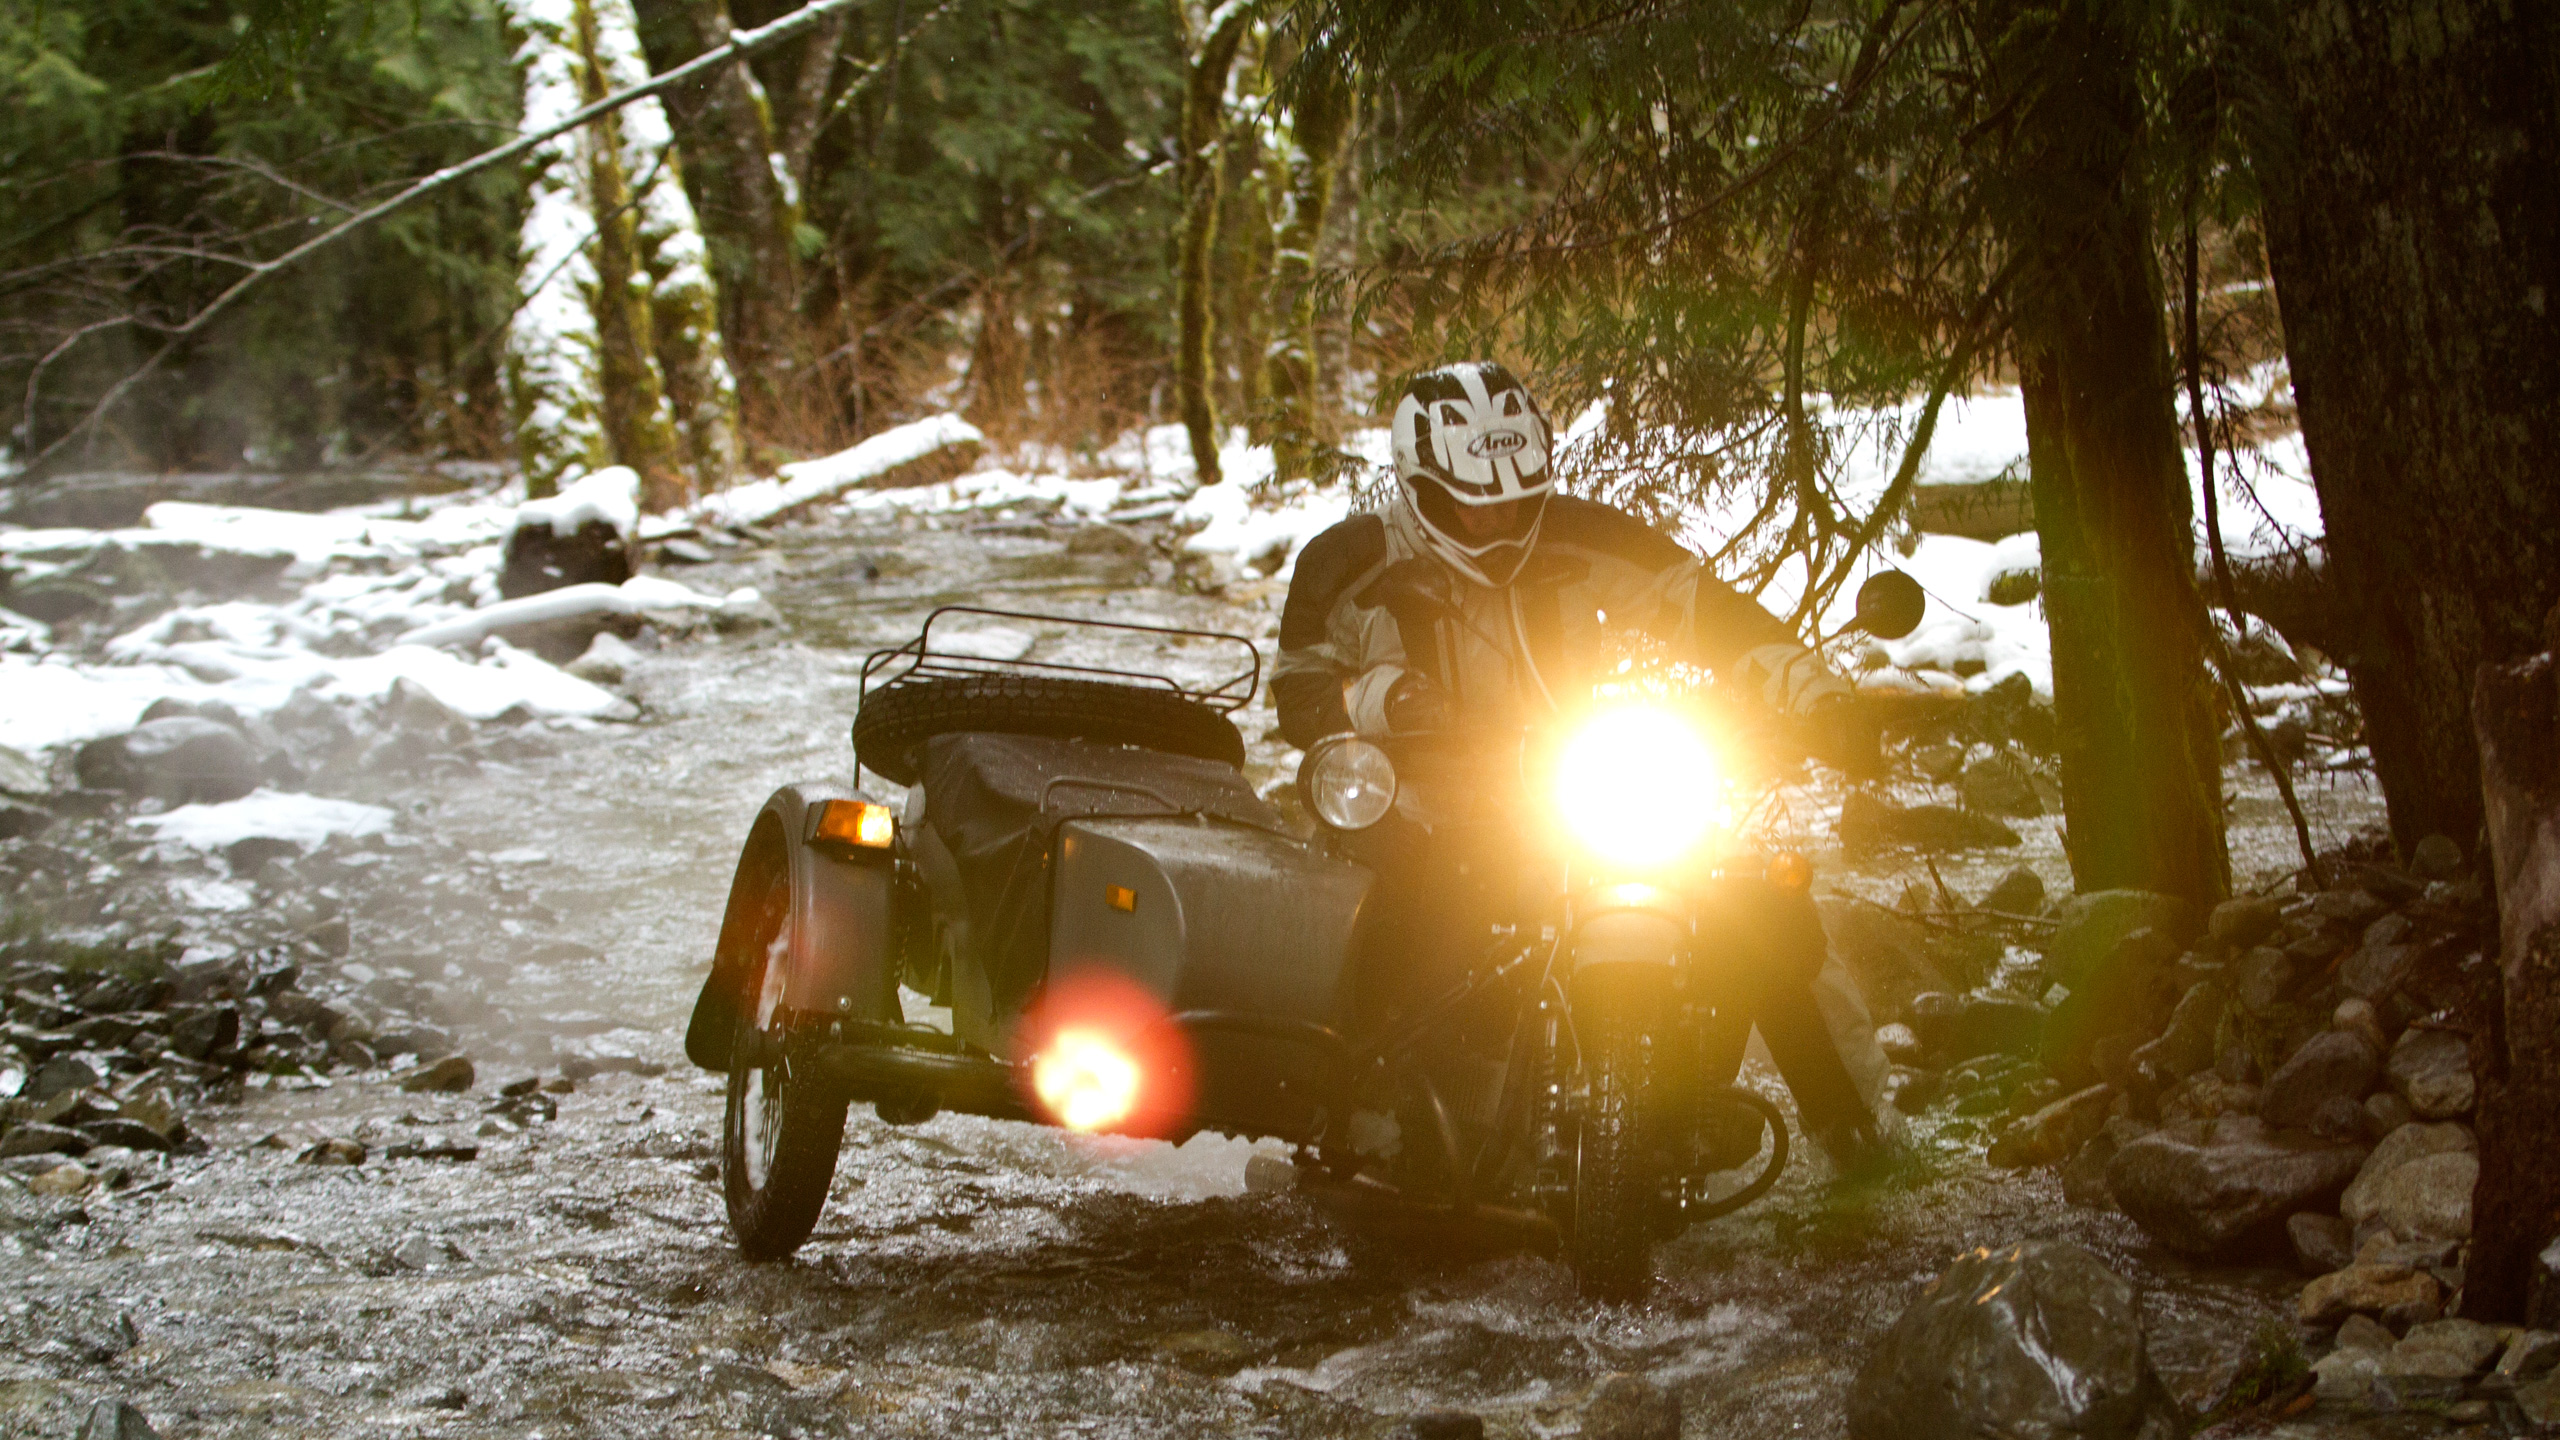 Ural Gear Up Wiring Diagram Trusted Ajs Owners Manuals 2560x1440 River 1